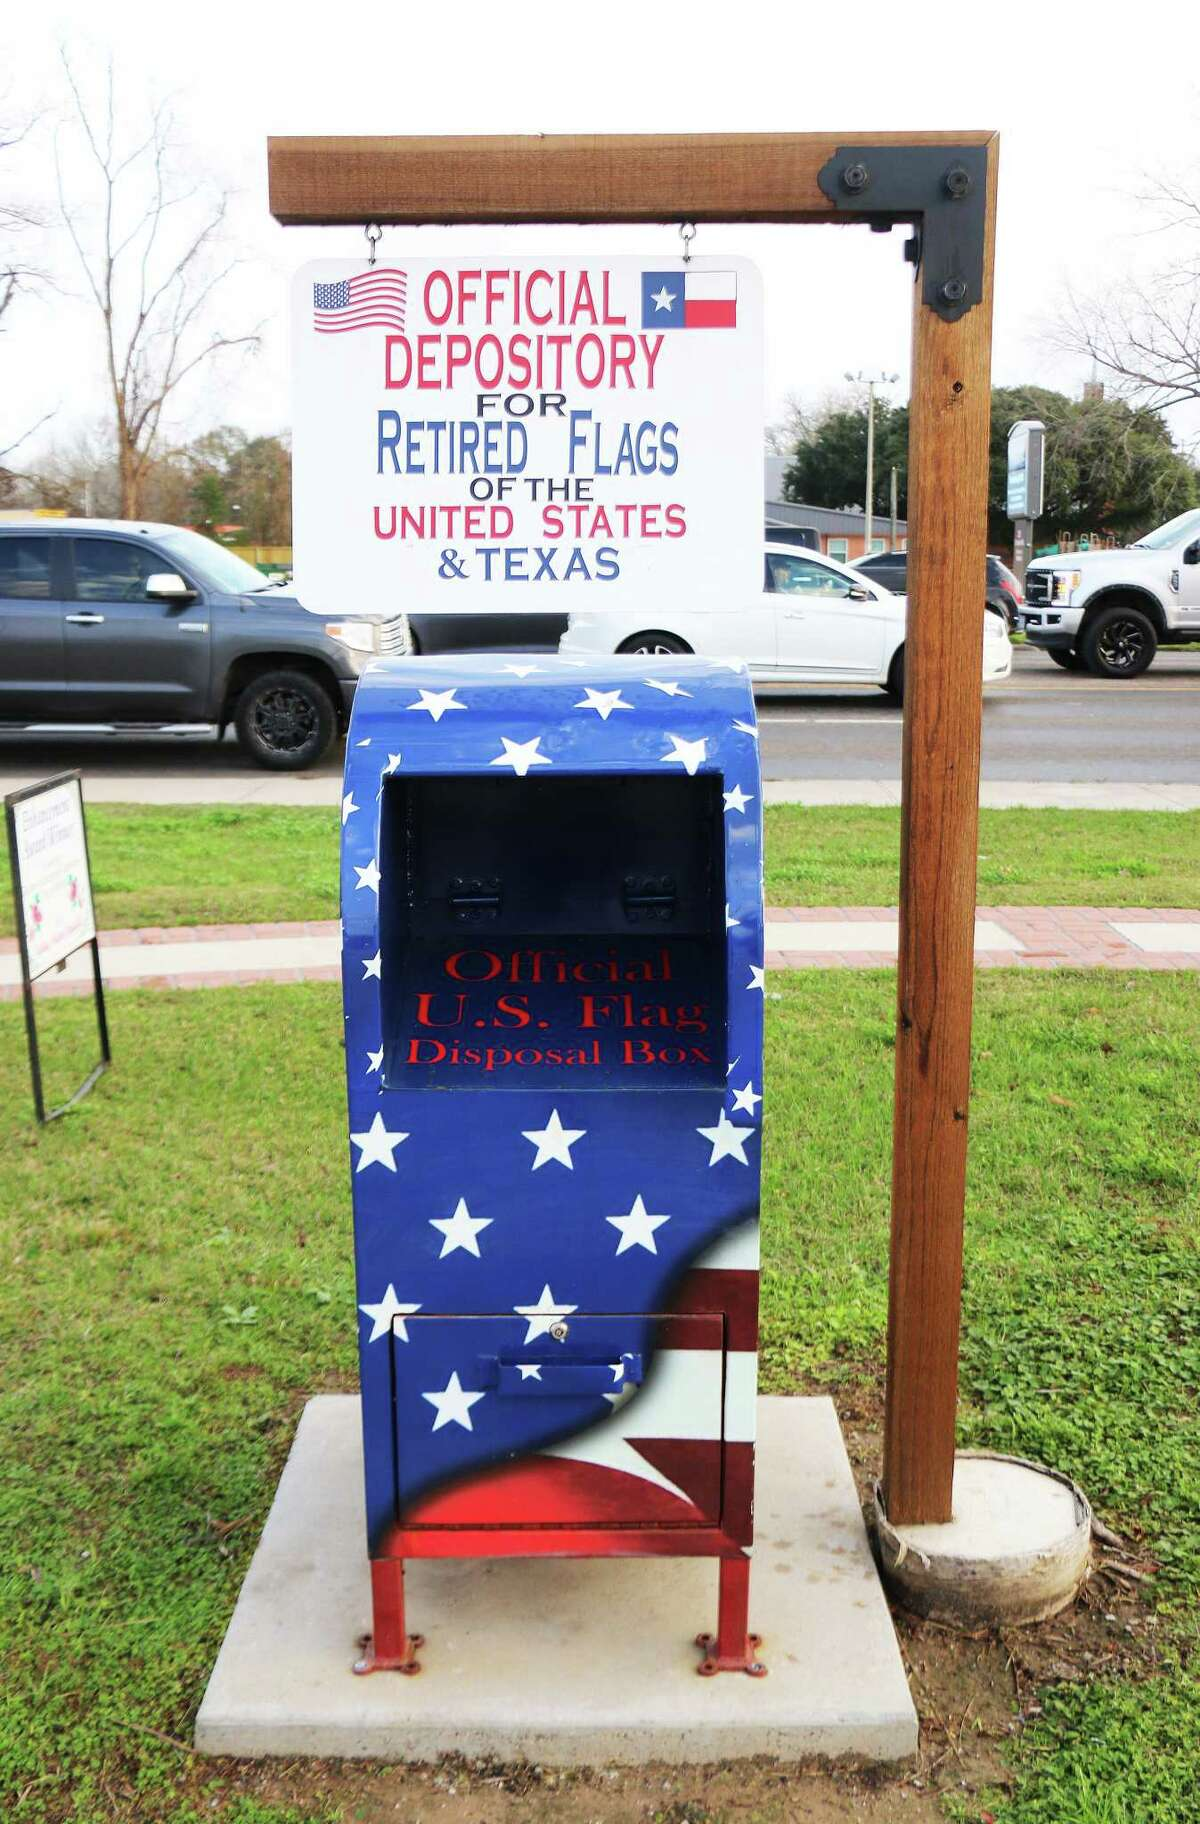 The Crossroads Plaza flag box is a collaborative project between the scout troop, the Dayton Enhancement Committee and the City of Dayton and is located at 111 N. Church St. parking lot.